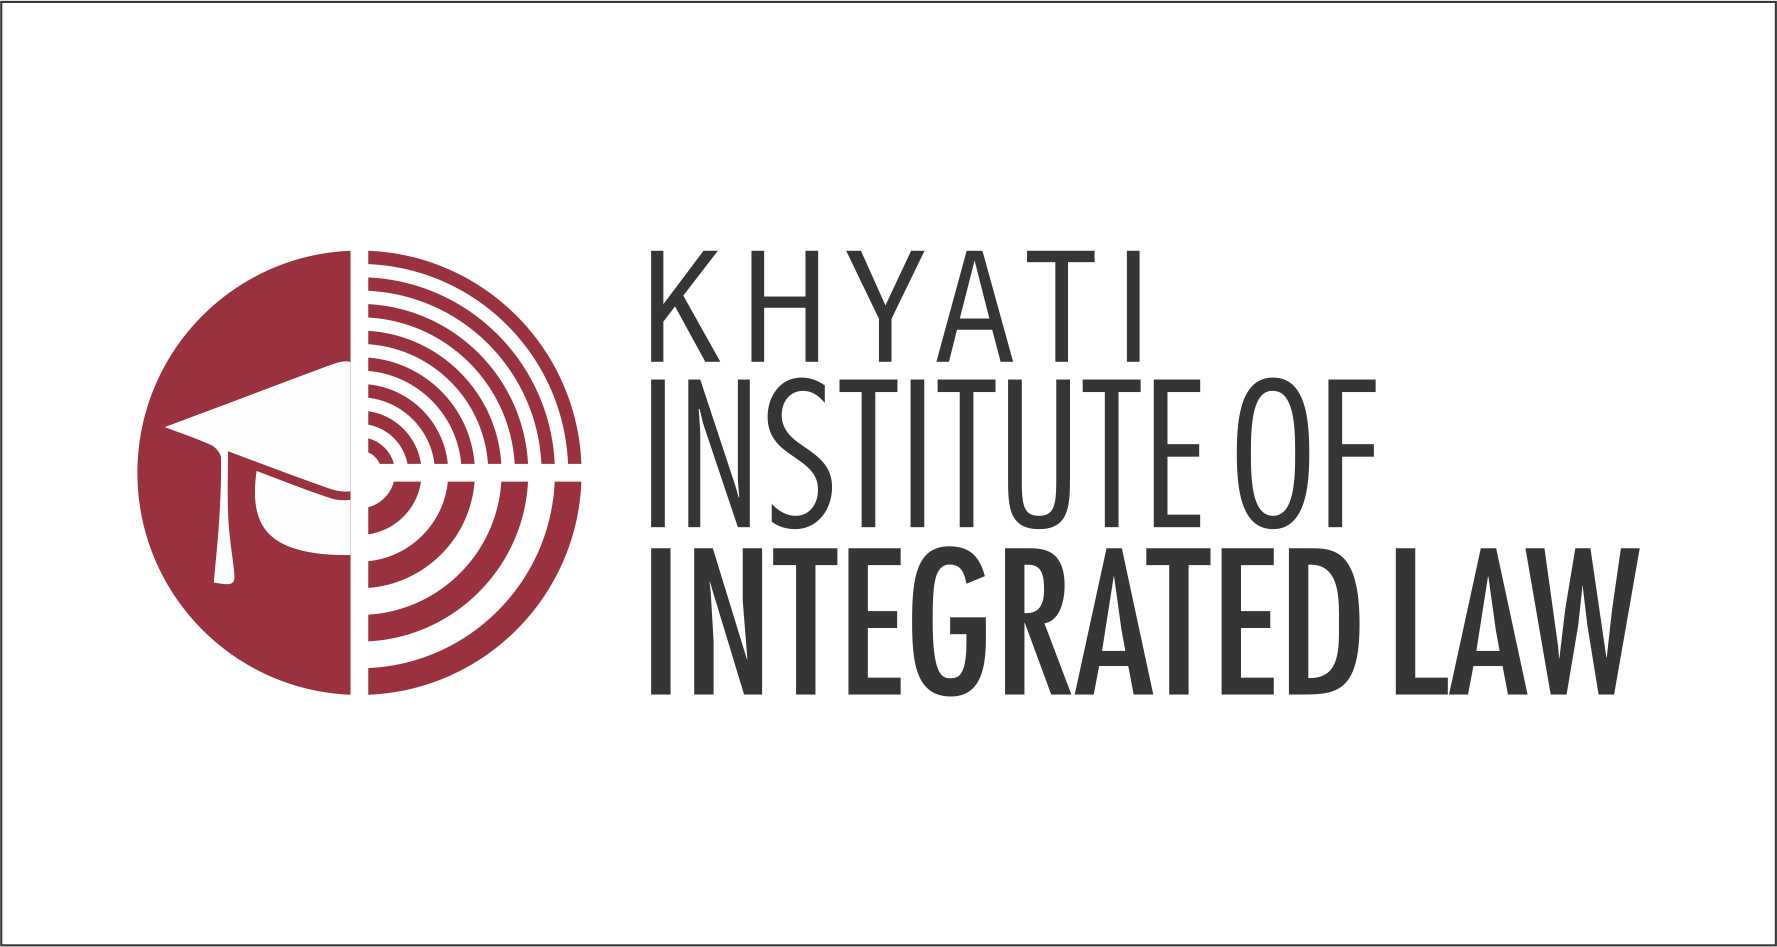 khyati institute of integrated law